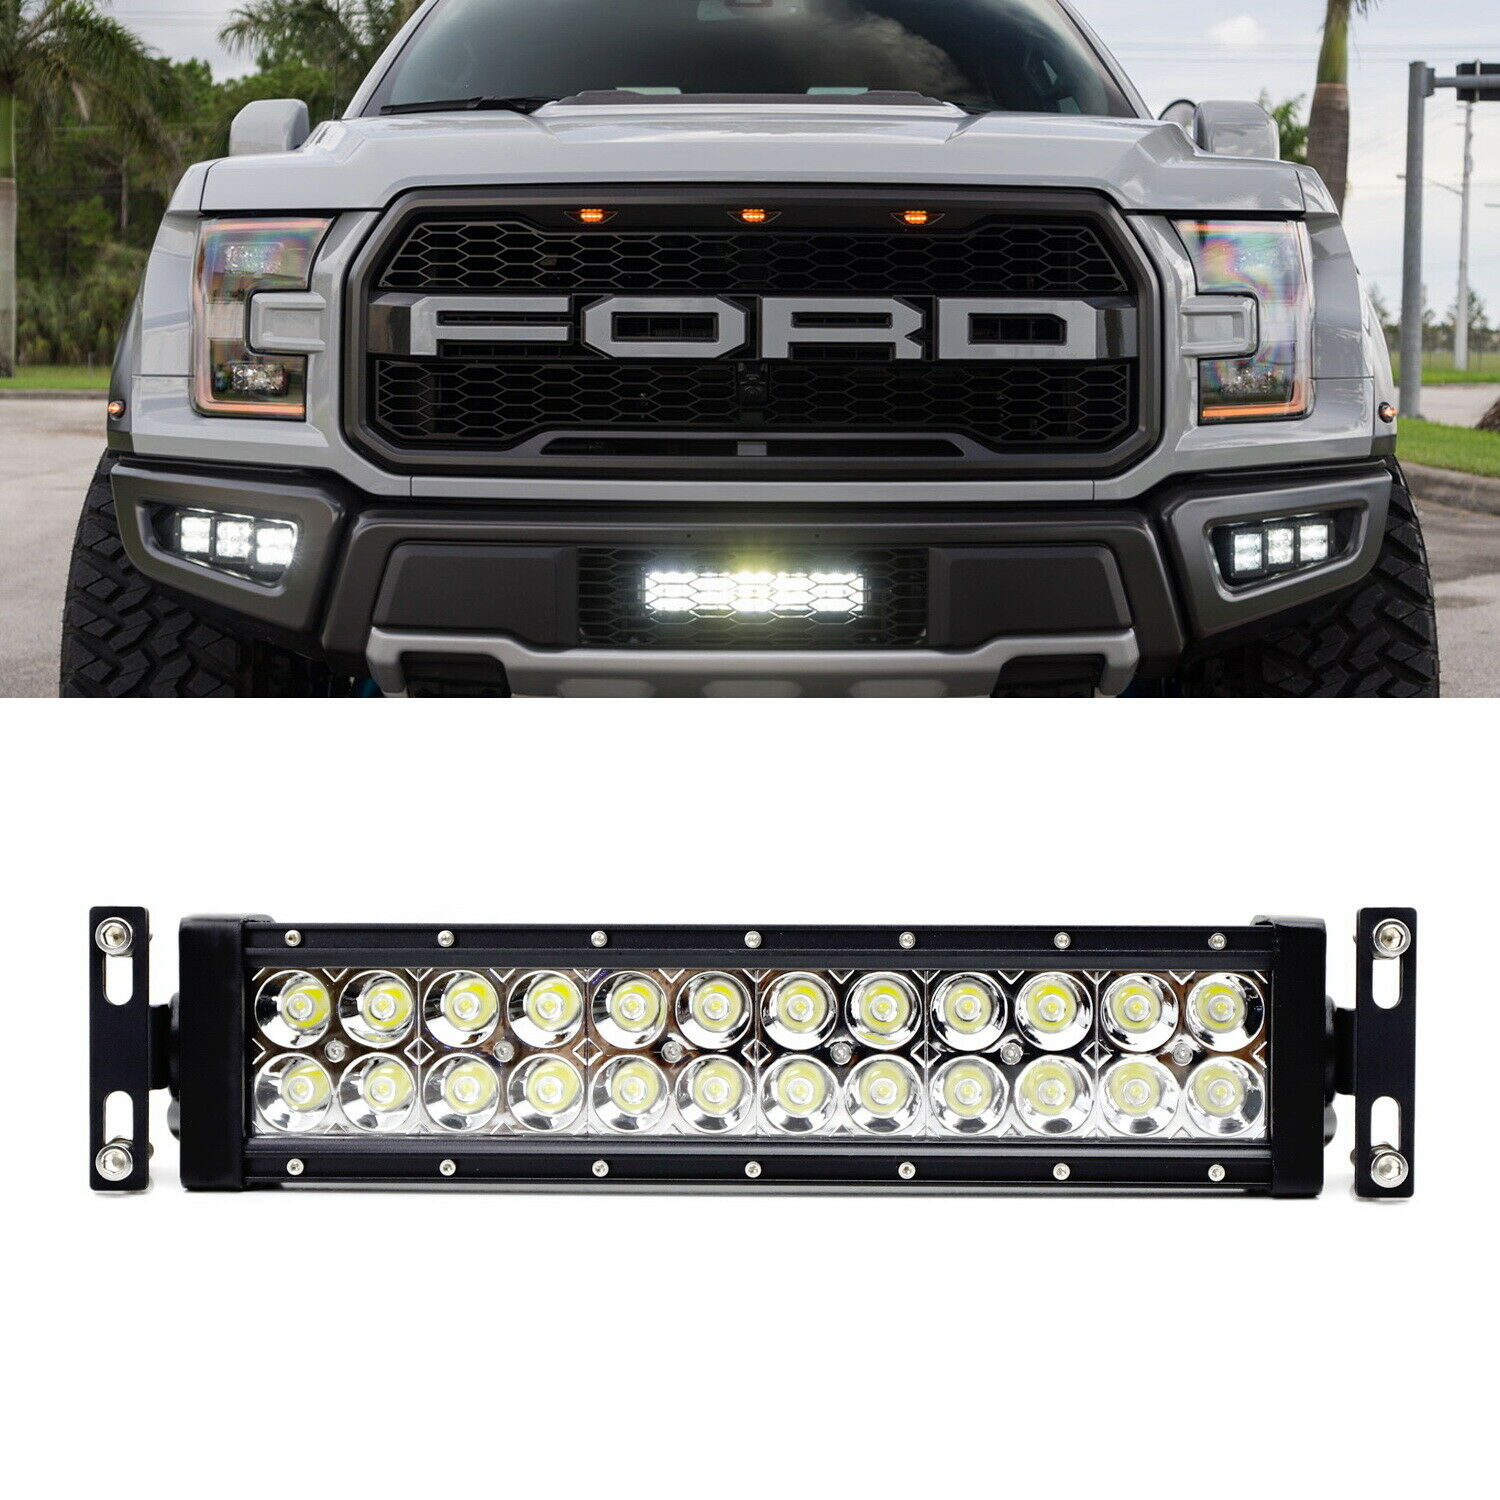 Invisible Behind Oem Grill Mount Led Light Bar Kit W Wiring For 17 Also Dodge Ram With On Rigid Ford